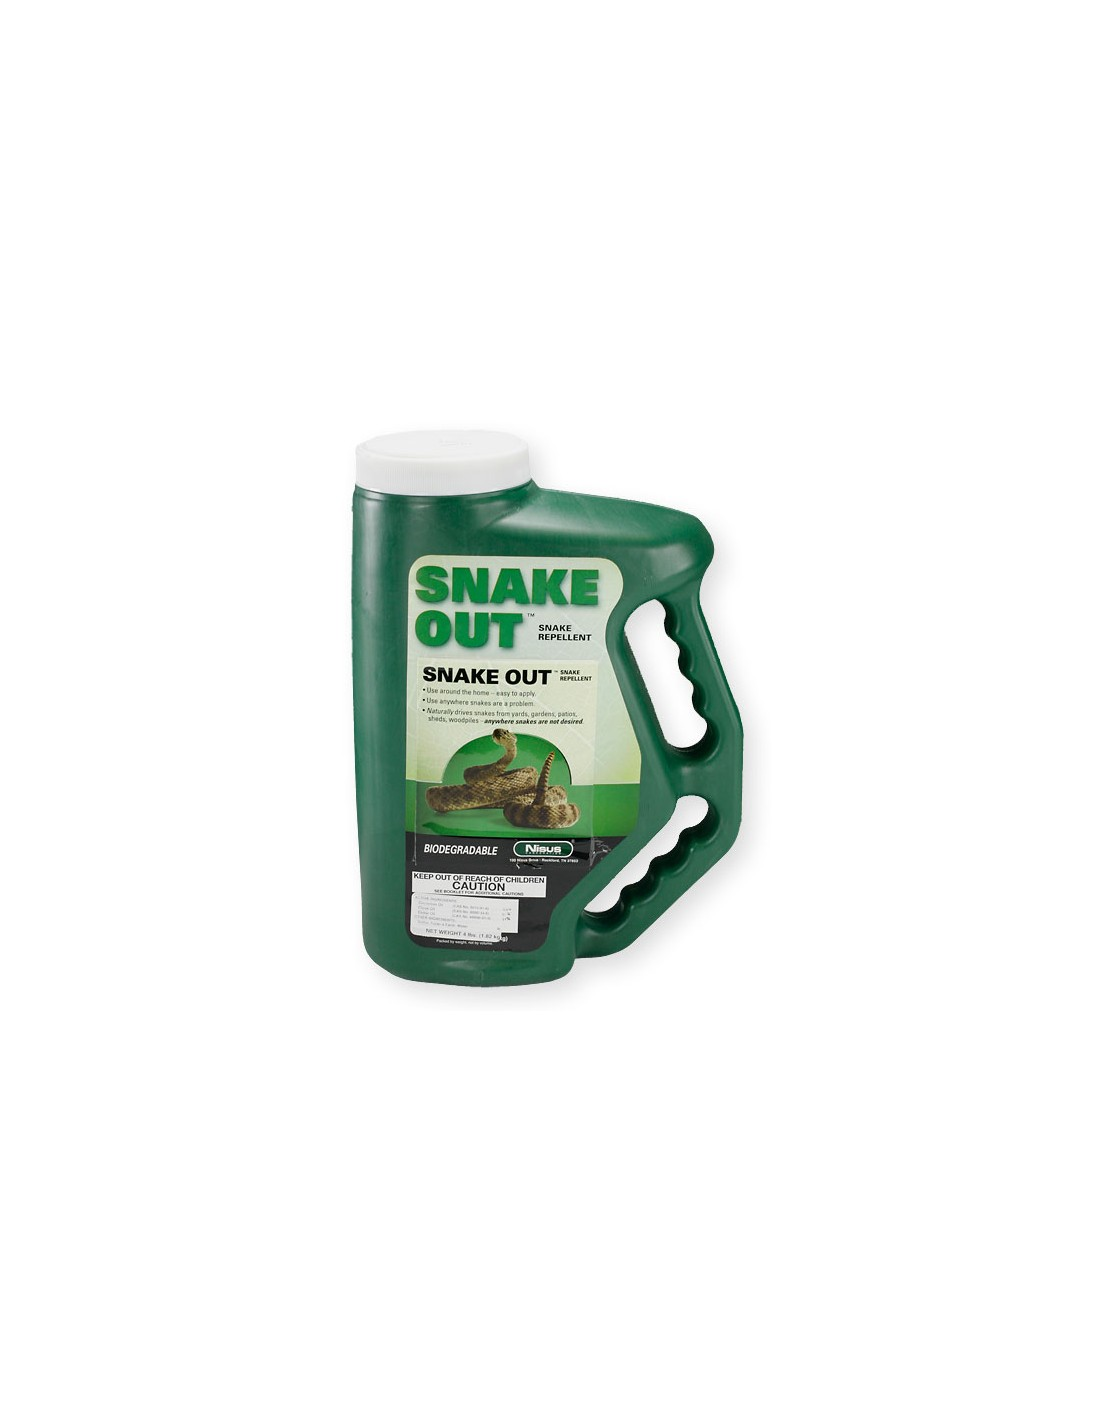 Snake Out Snake Repellent Questions & Answers